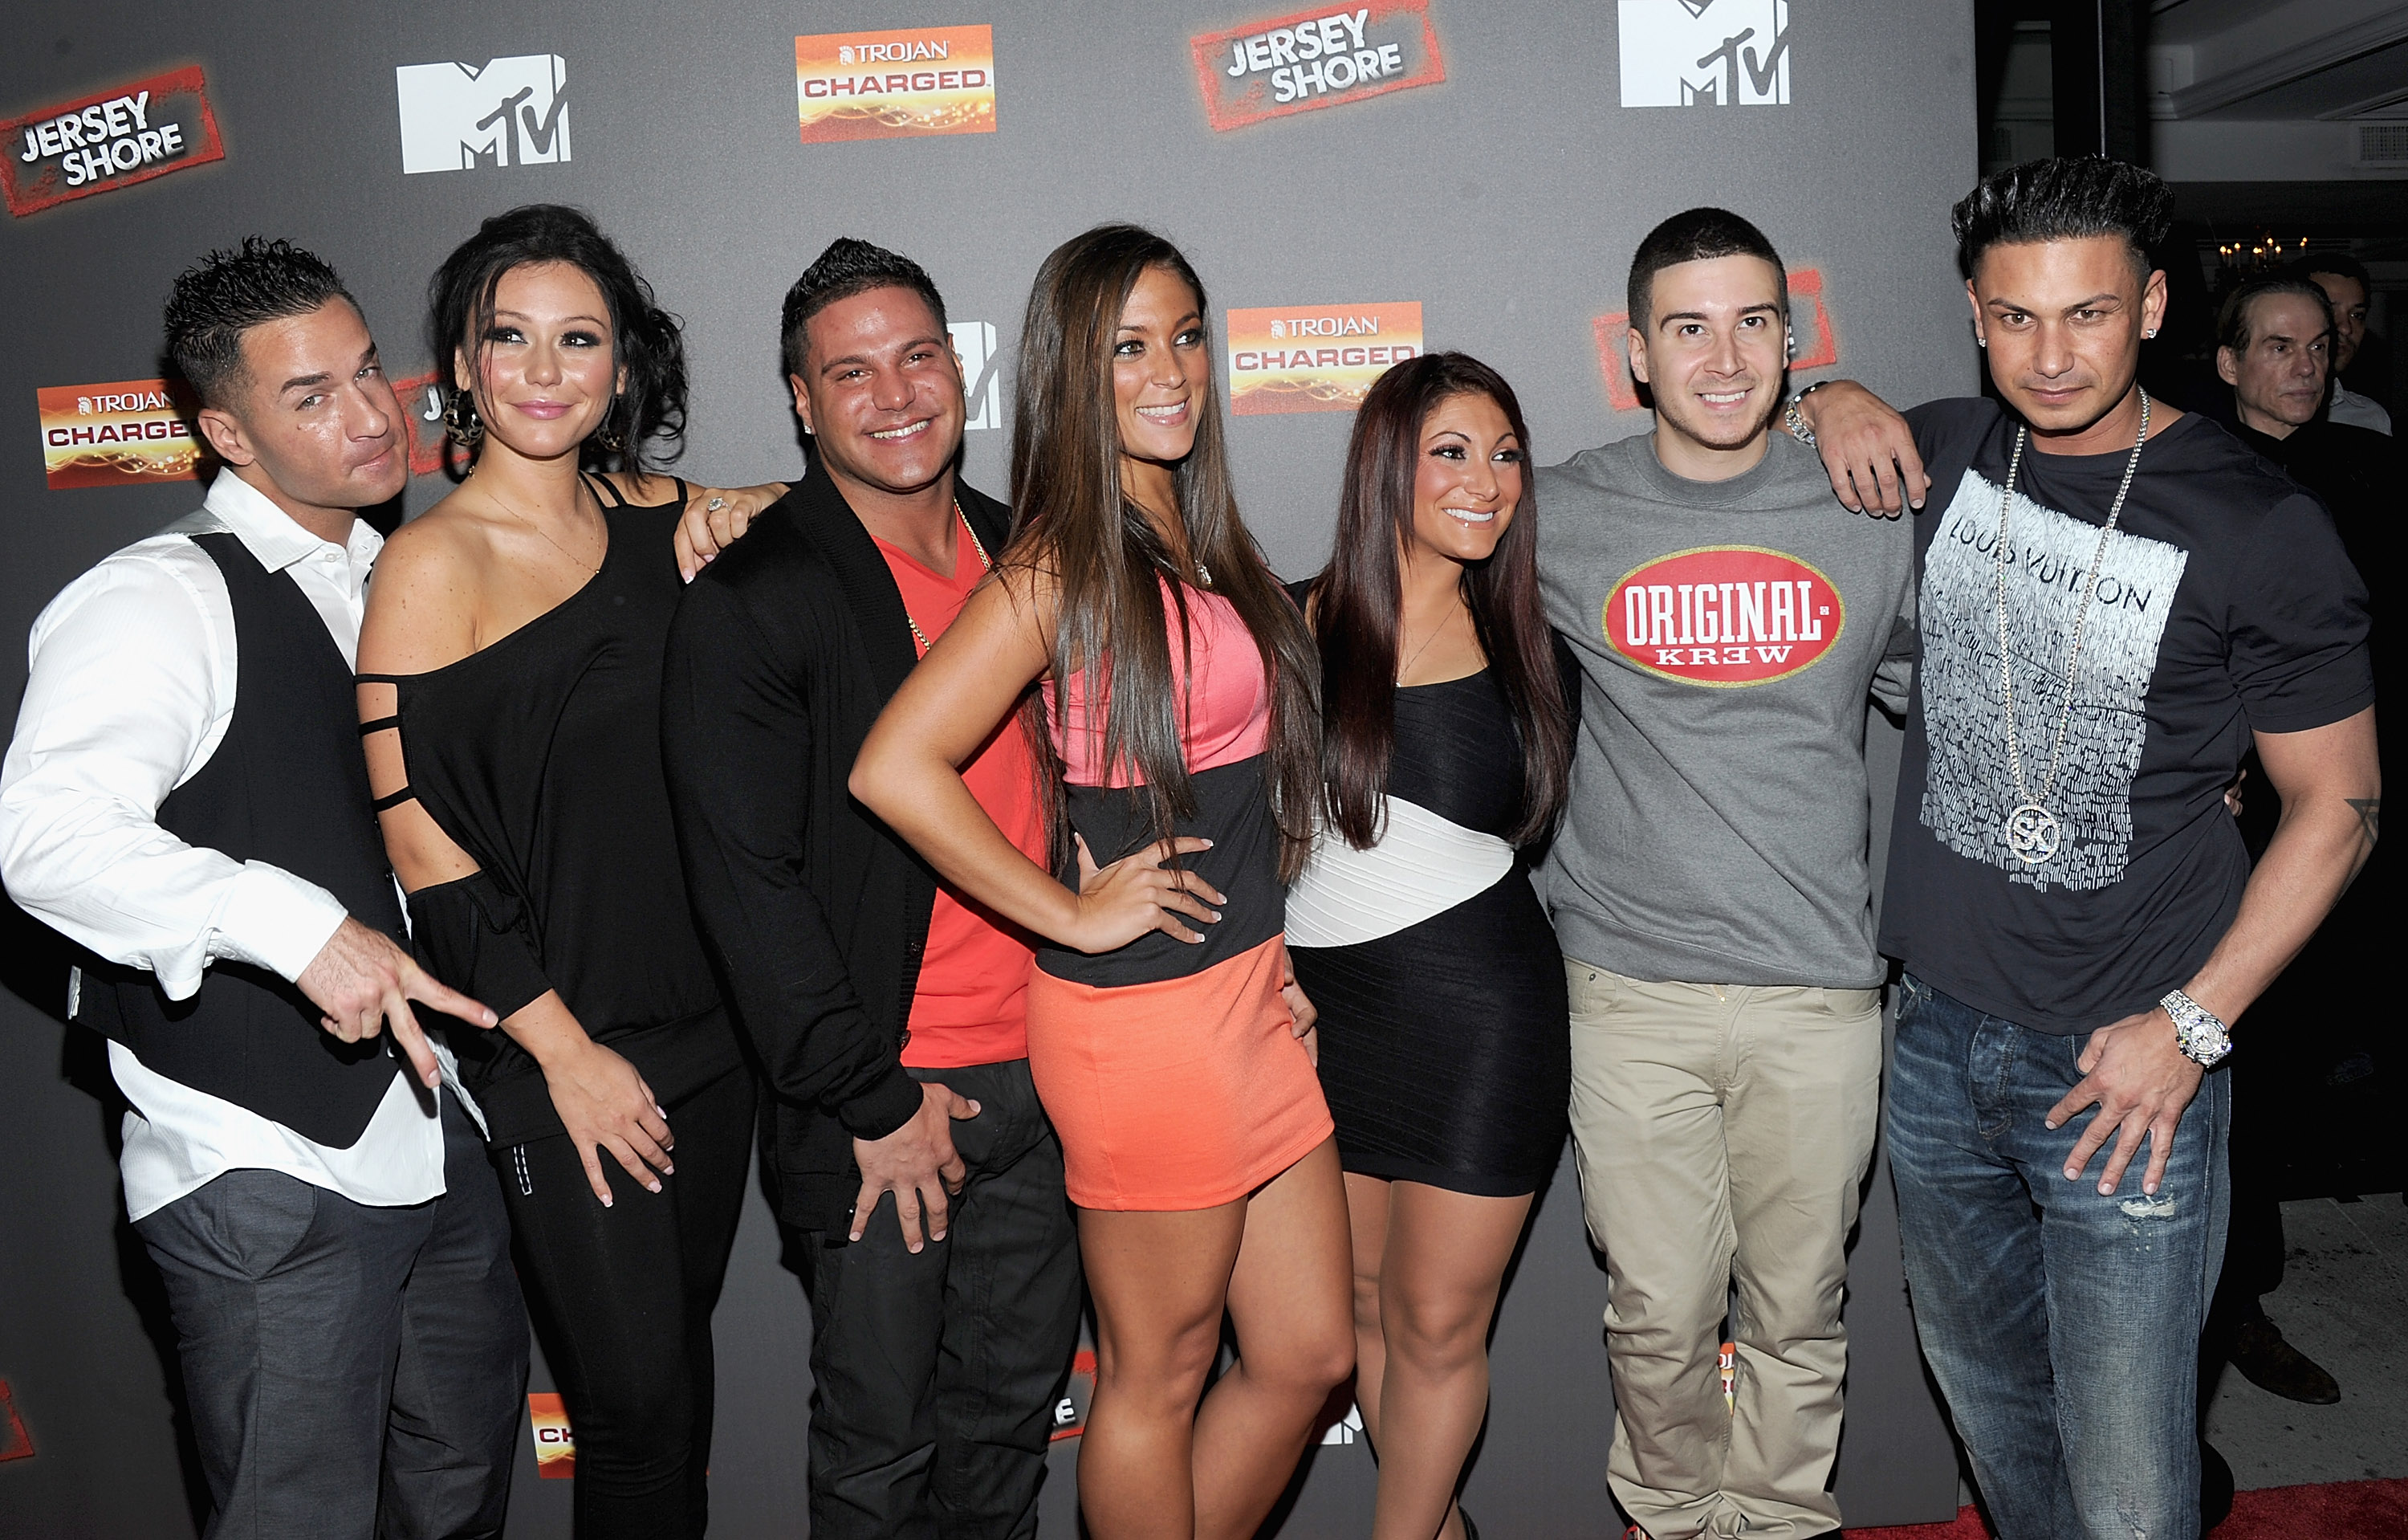 jersey shore dating service